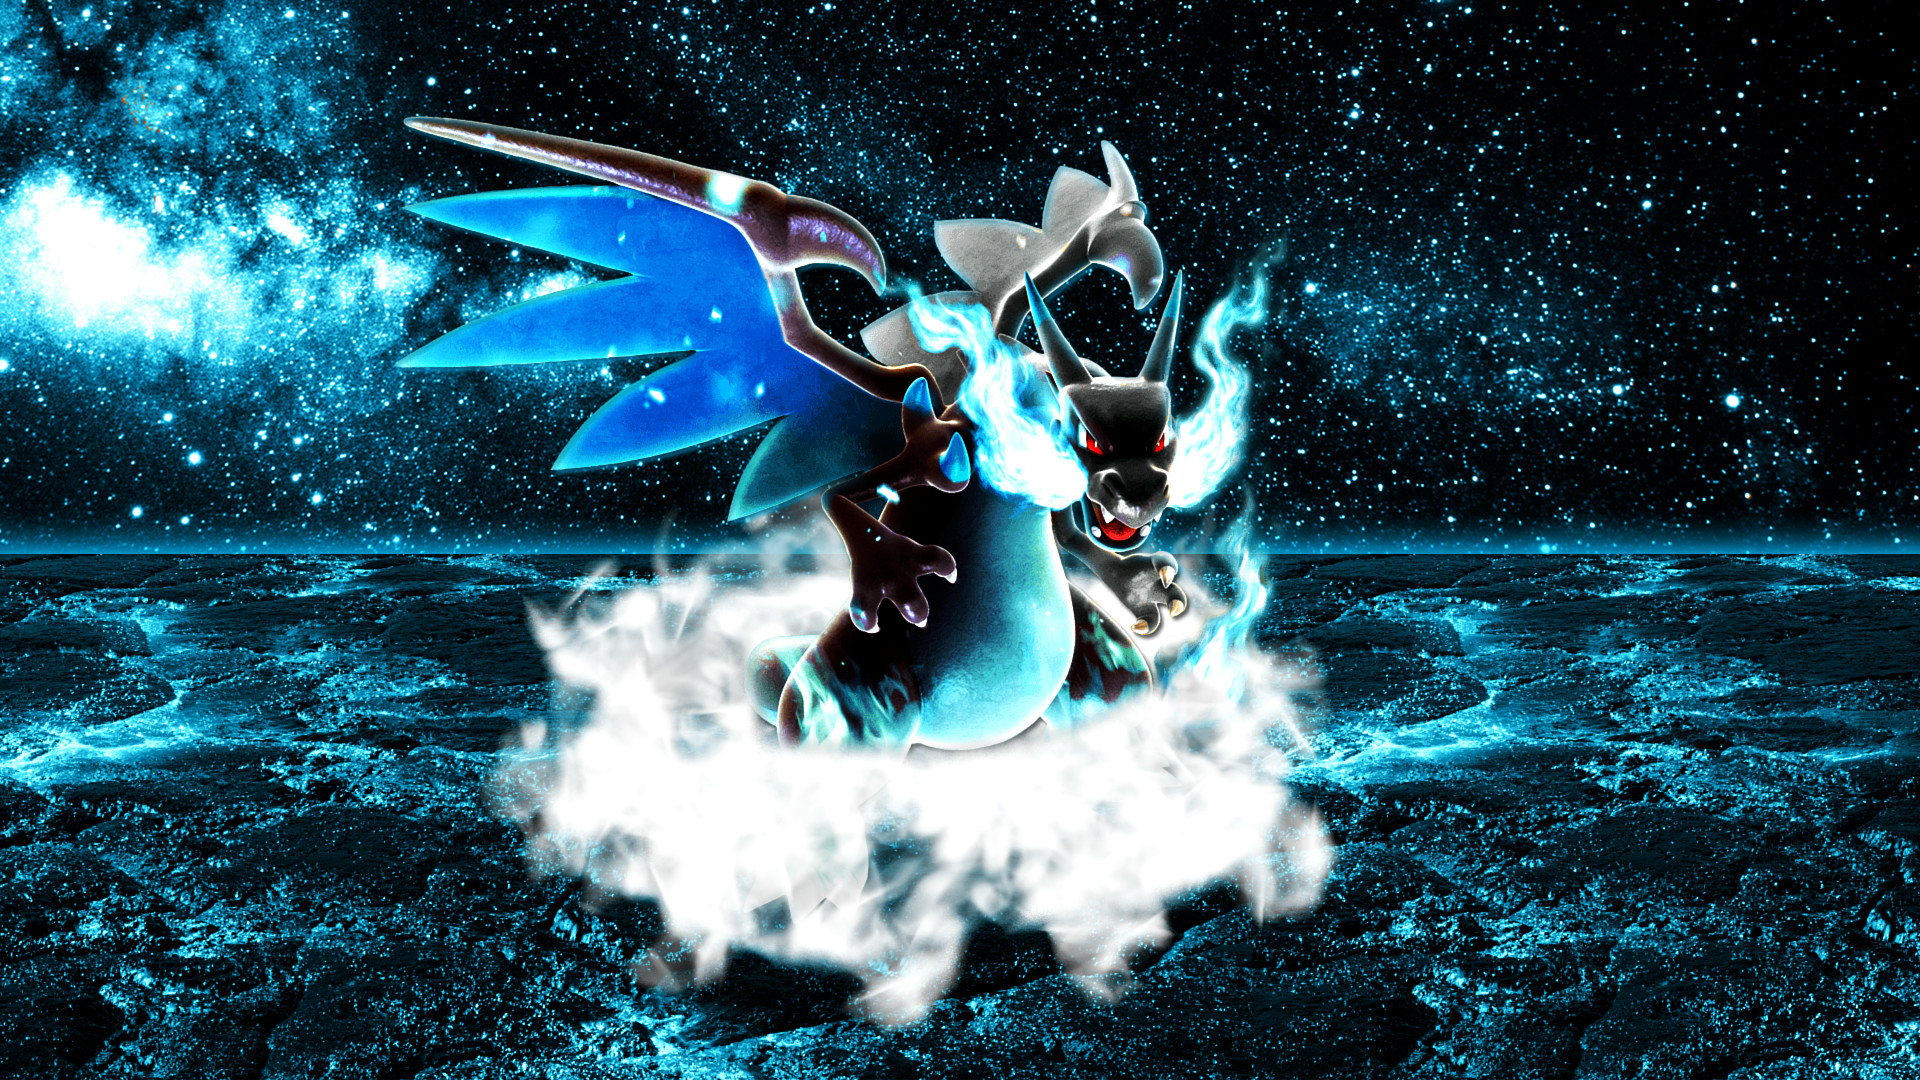 Res: 1920x1080, Pokemon Charizard Images HD.